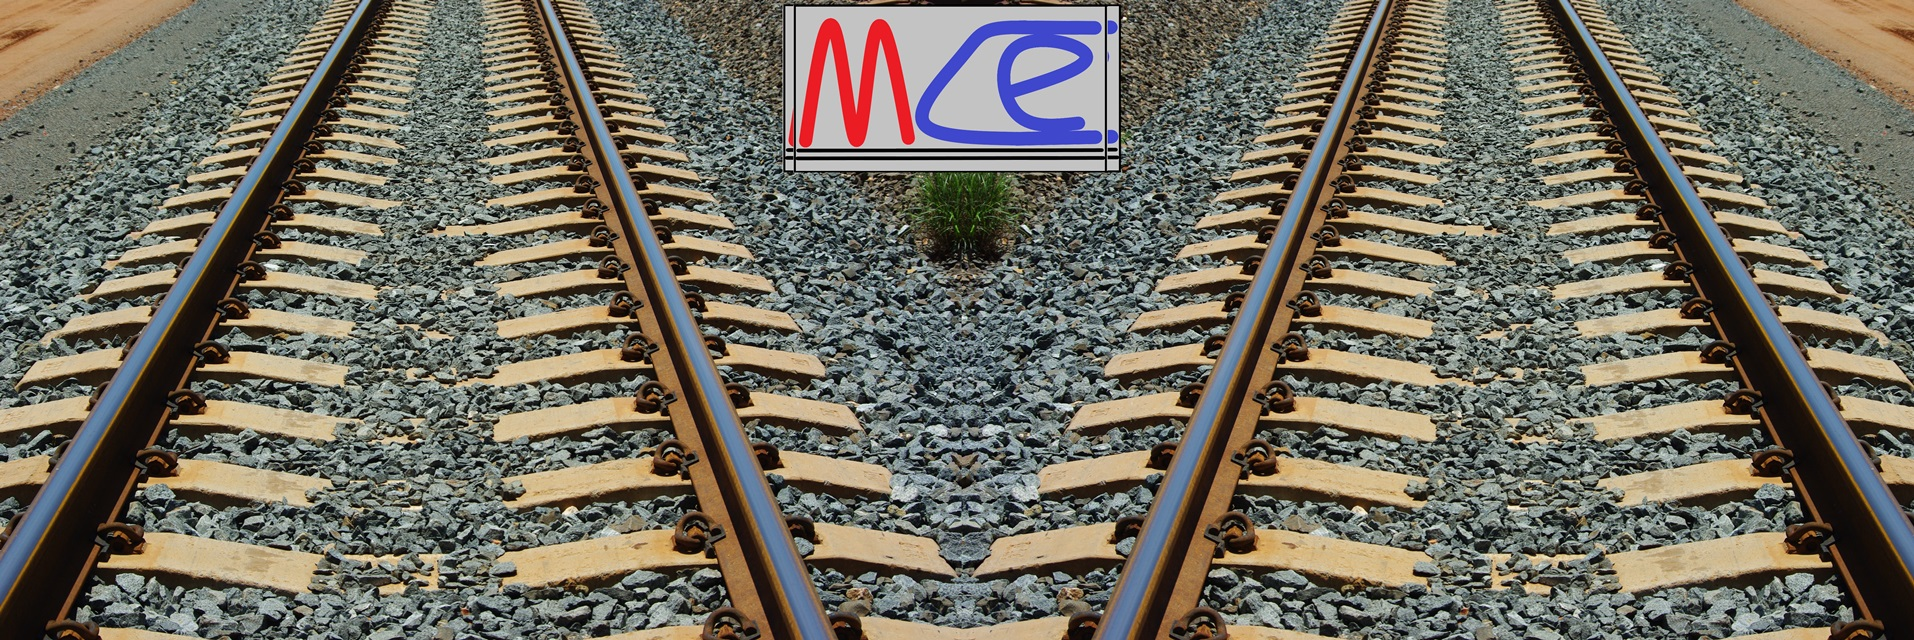 MARAIS CONSULTING ENGINEERS by Alto Consulting (WA) Pty Ltd